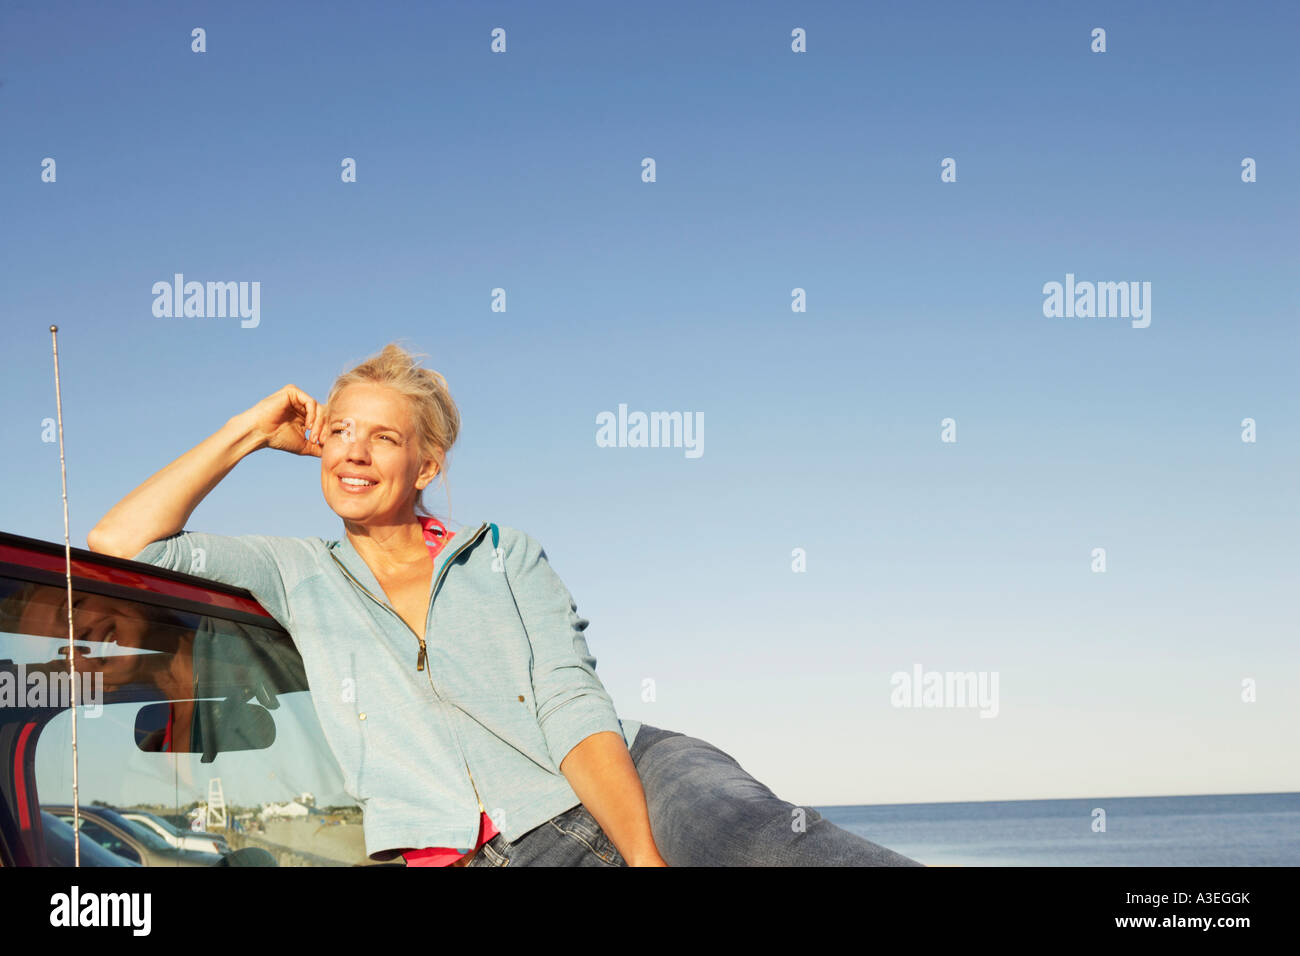 Mature woman sitting on the bonnet of a sports utility vehicle and looking away - Stock Image